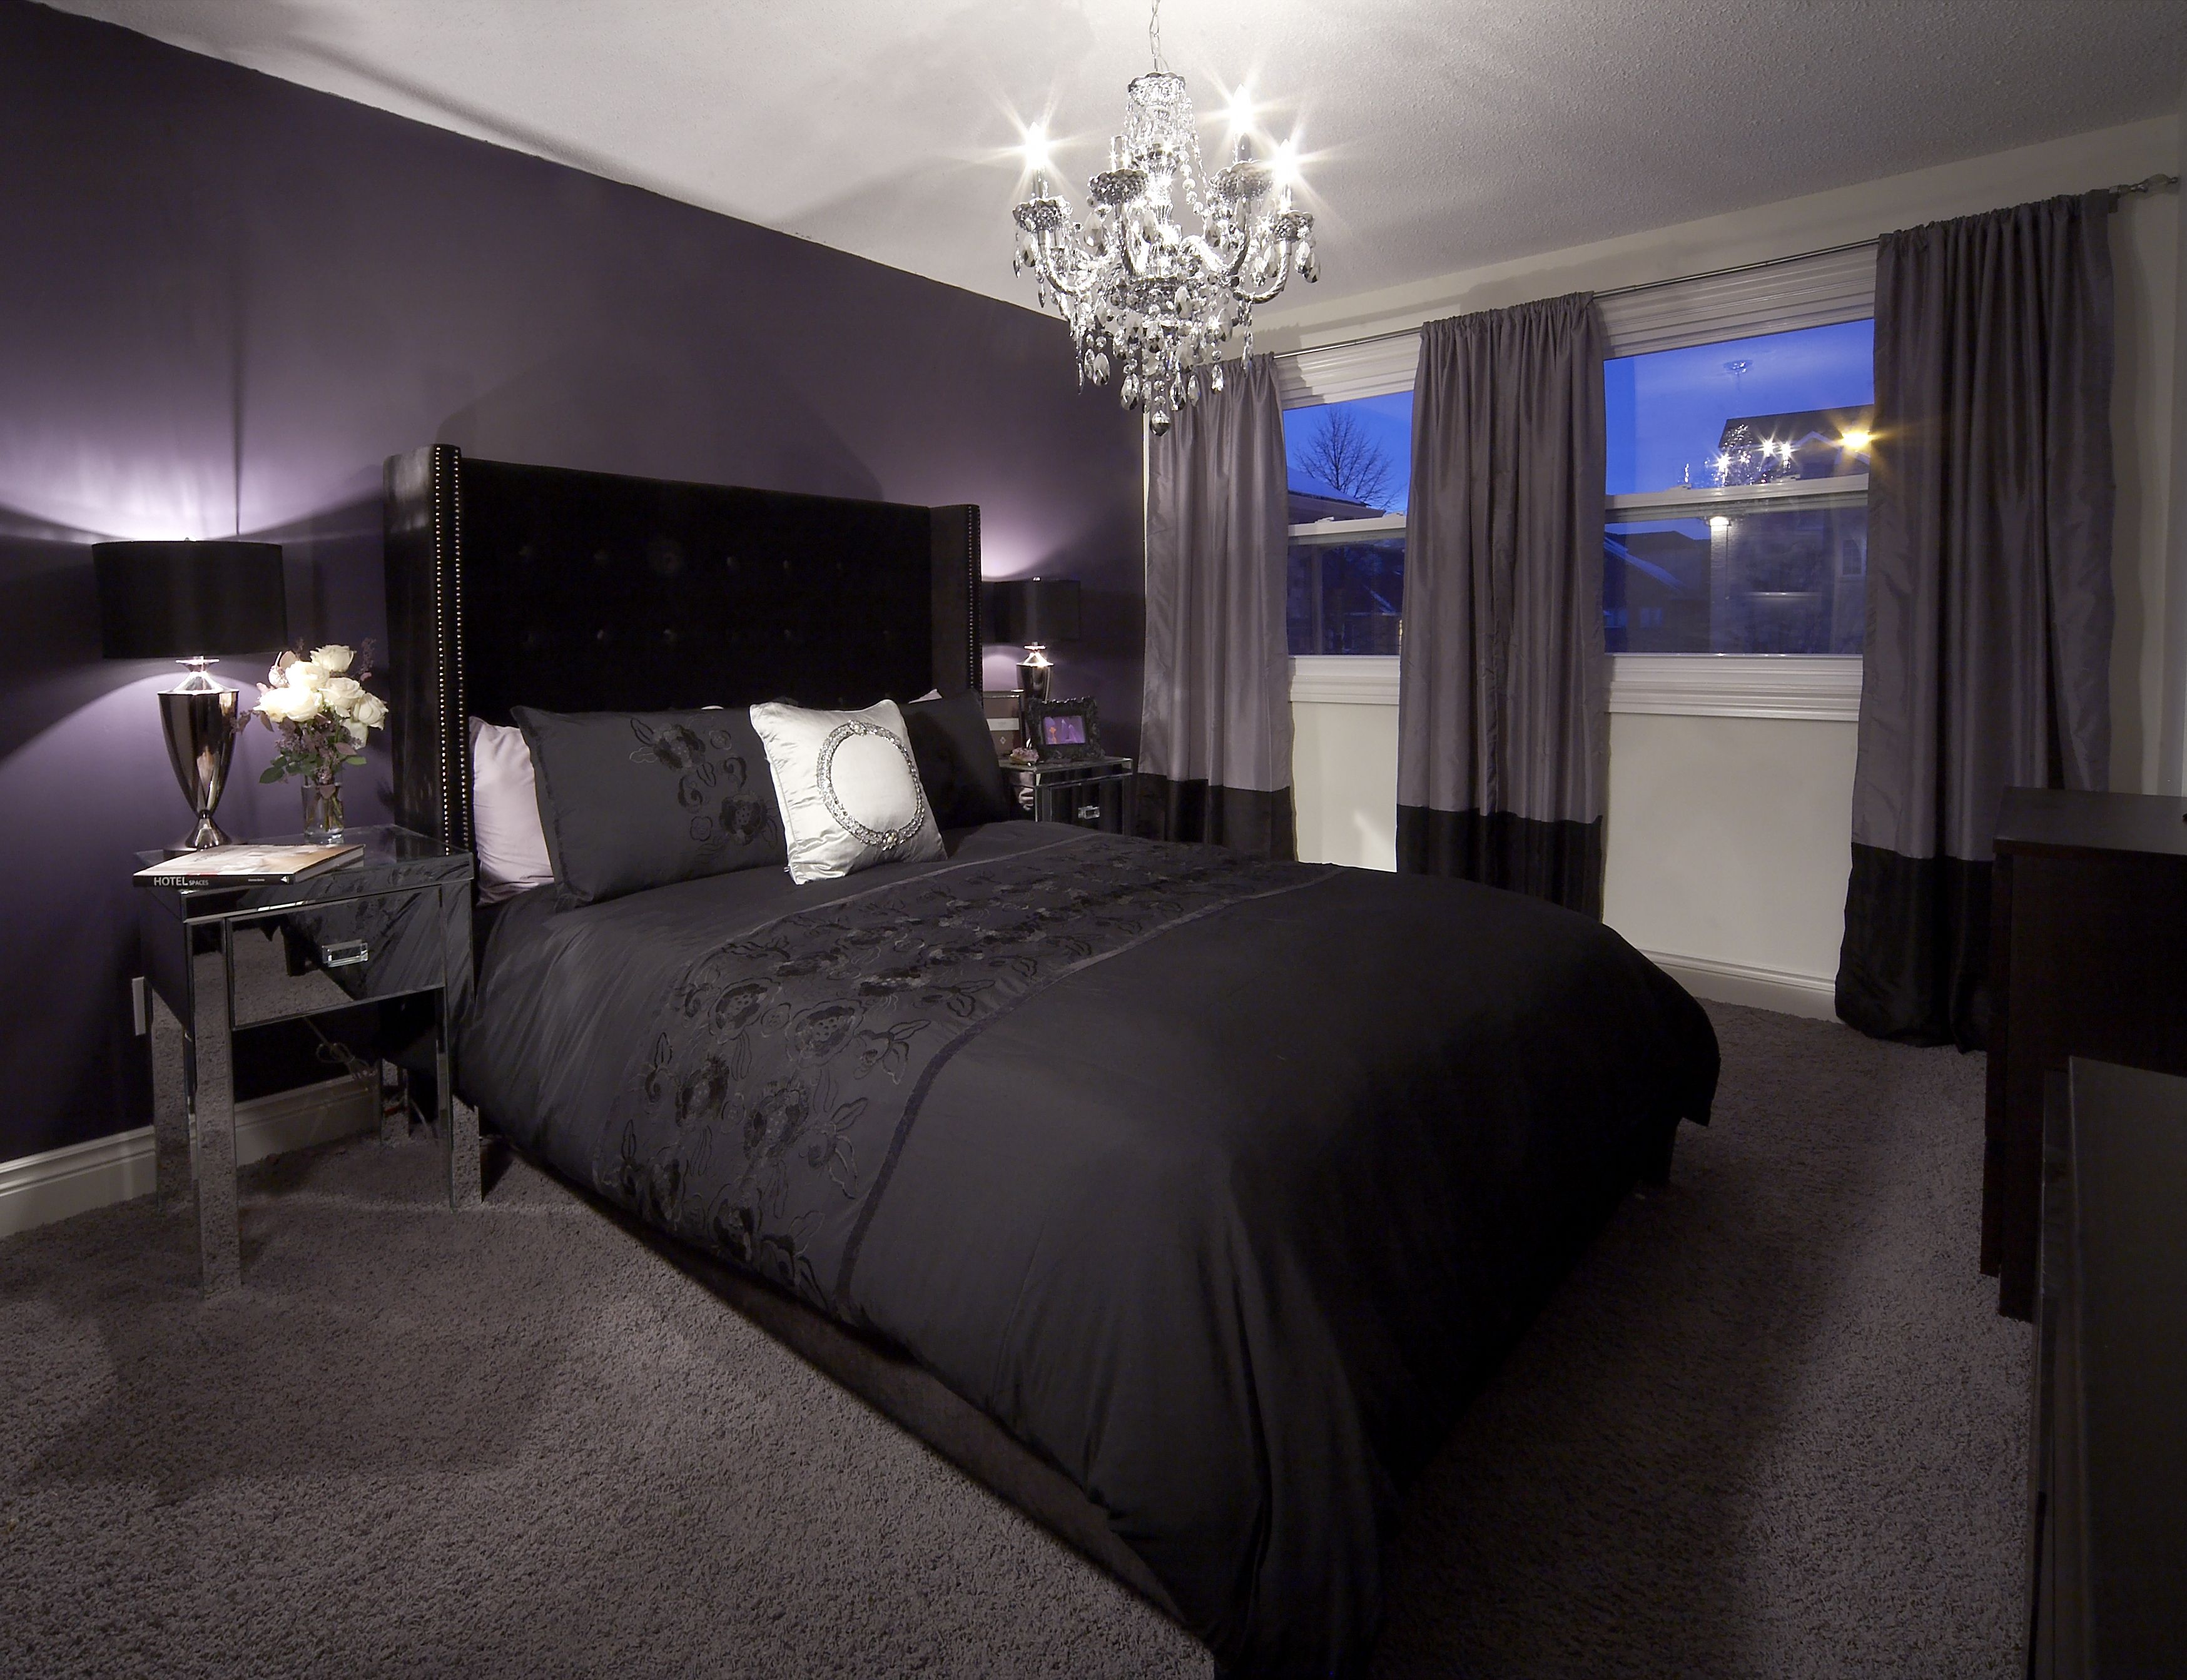 Bedroom With Purple Feature Wall And Drapery Crystal Chandelier